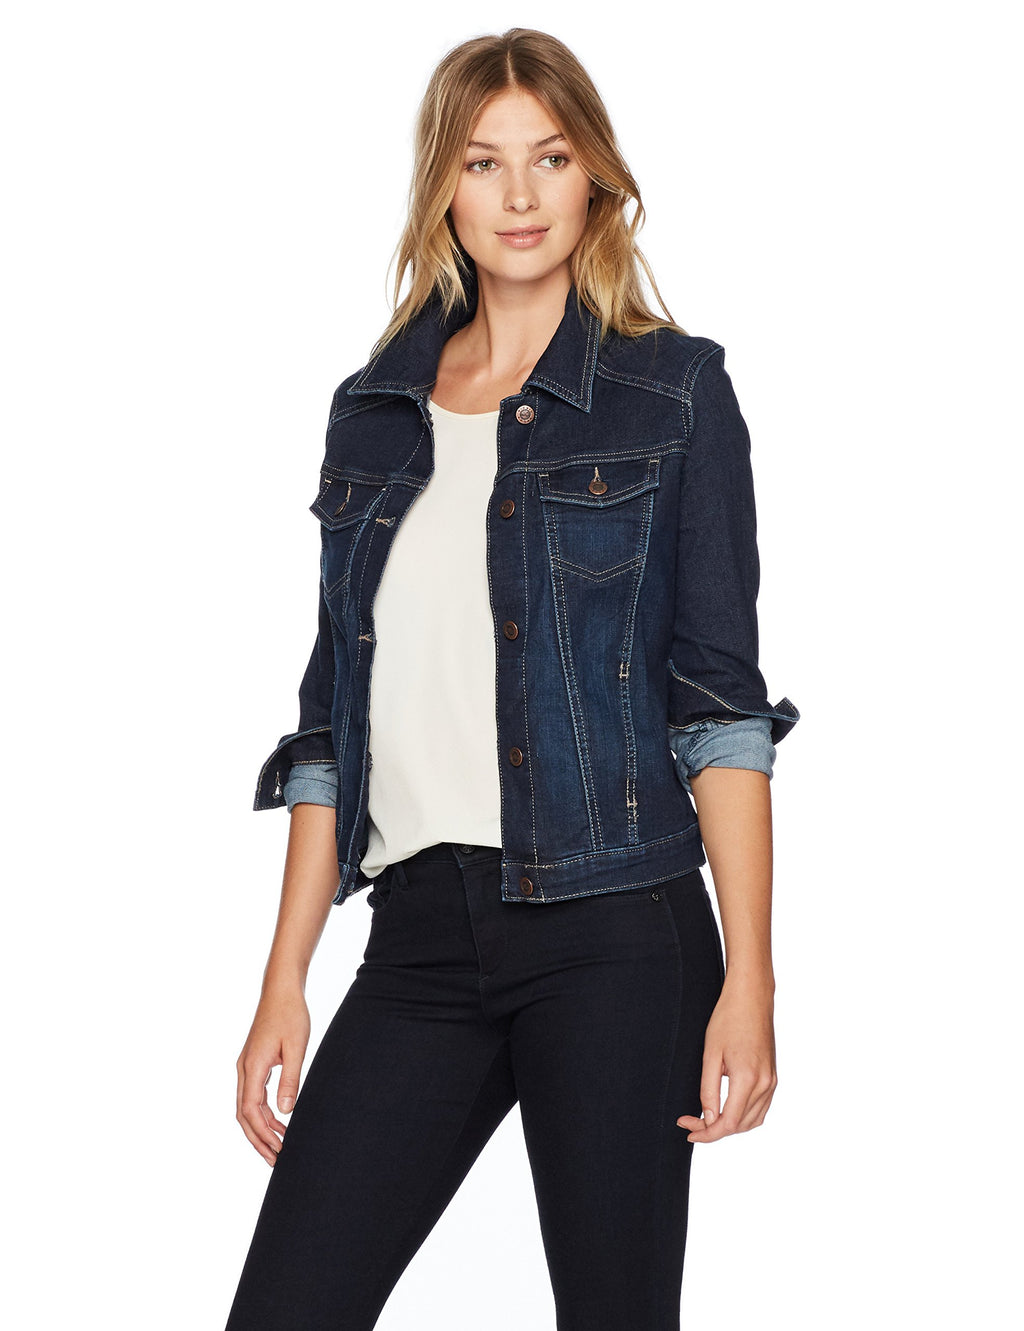 Riders by Lee Indigo Women's Stretch Denim Jacket, Drenched, Medium - Gaby.shop